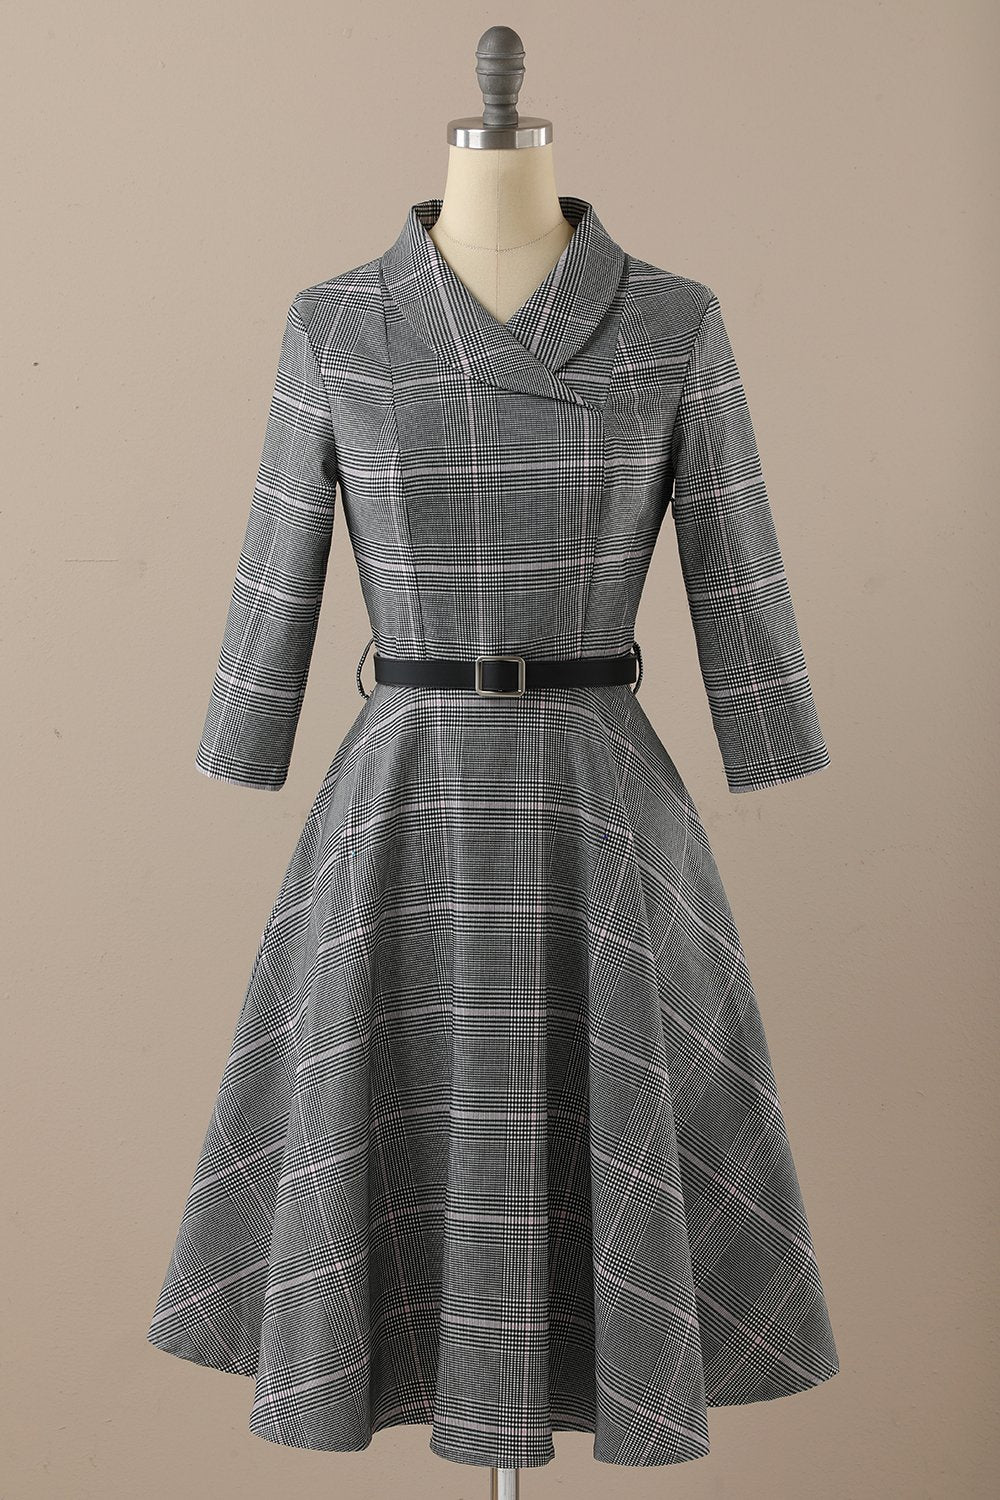 Retro Style Dark Grey Vintage Dress with Long Sleeves